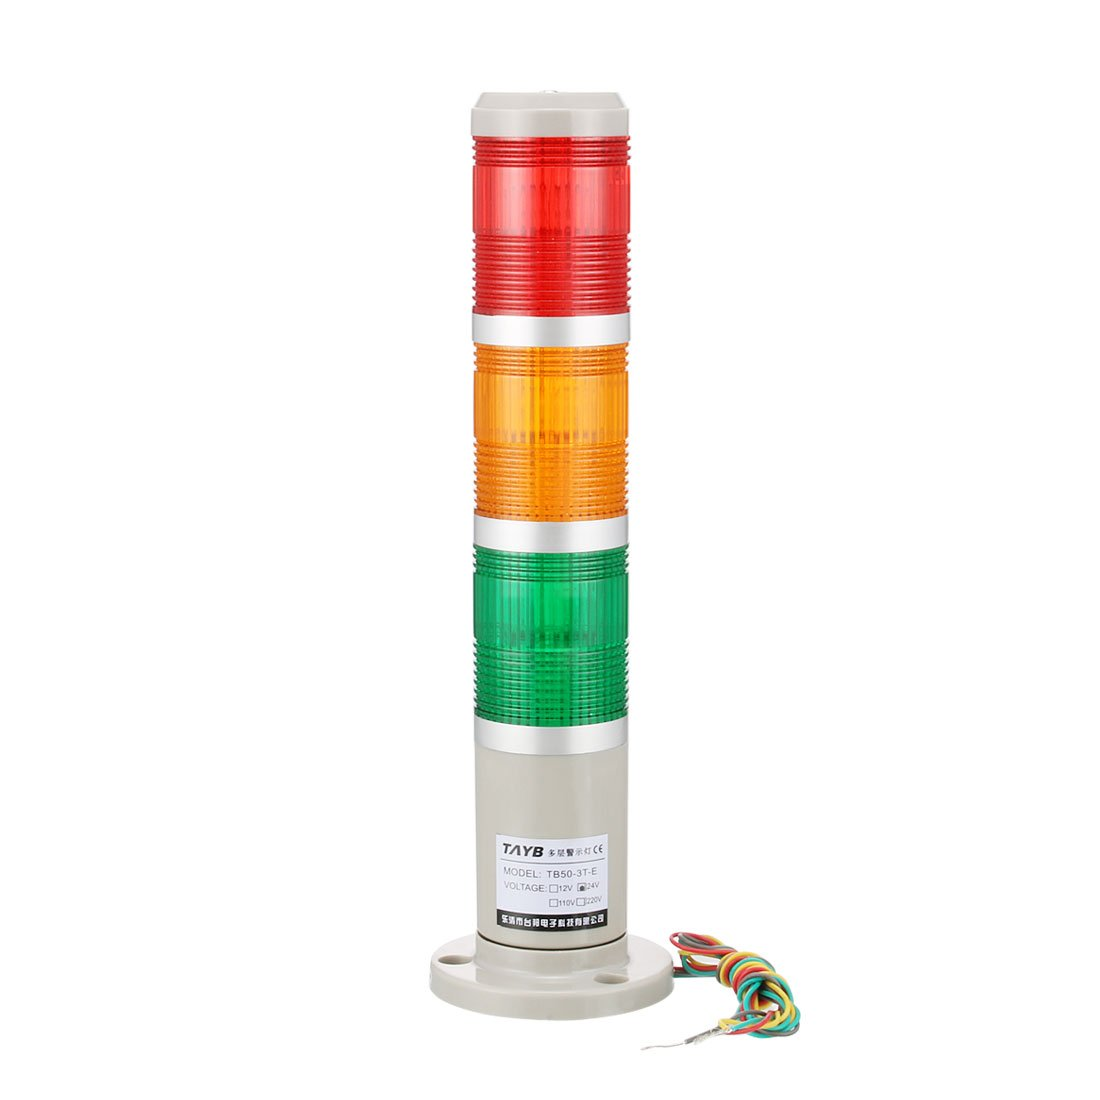 uxcell Warning Light Bulb Bright Industrial Signal Alarm Tower Lamp DC12V Red TB50-1T-E